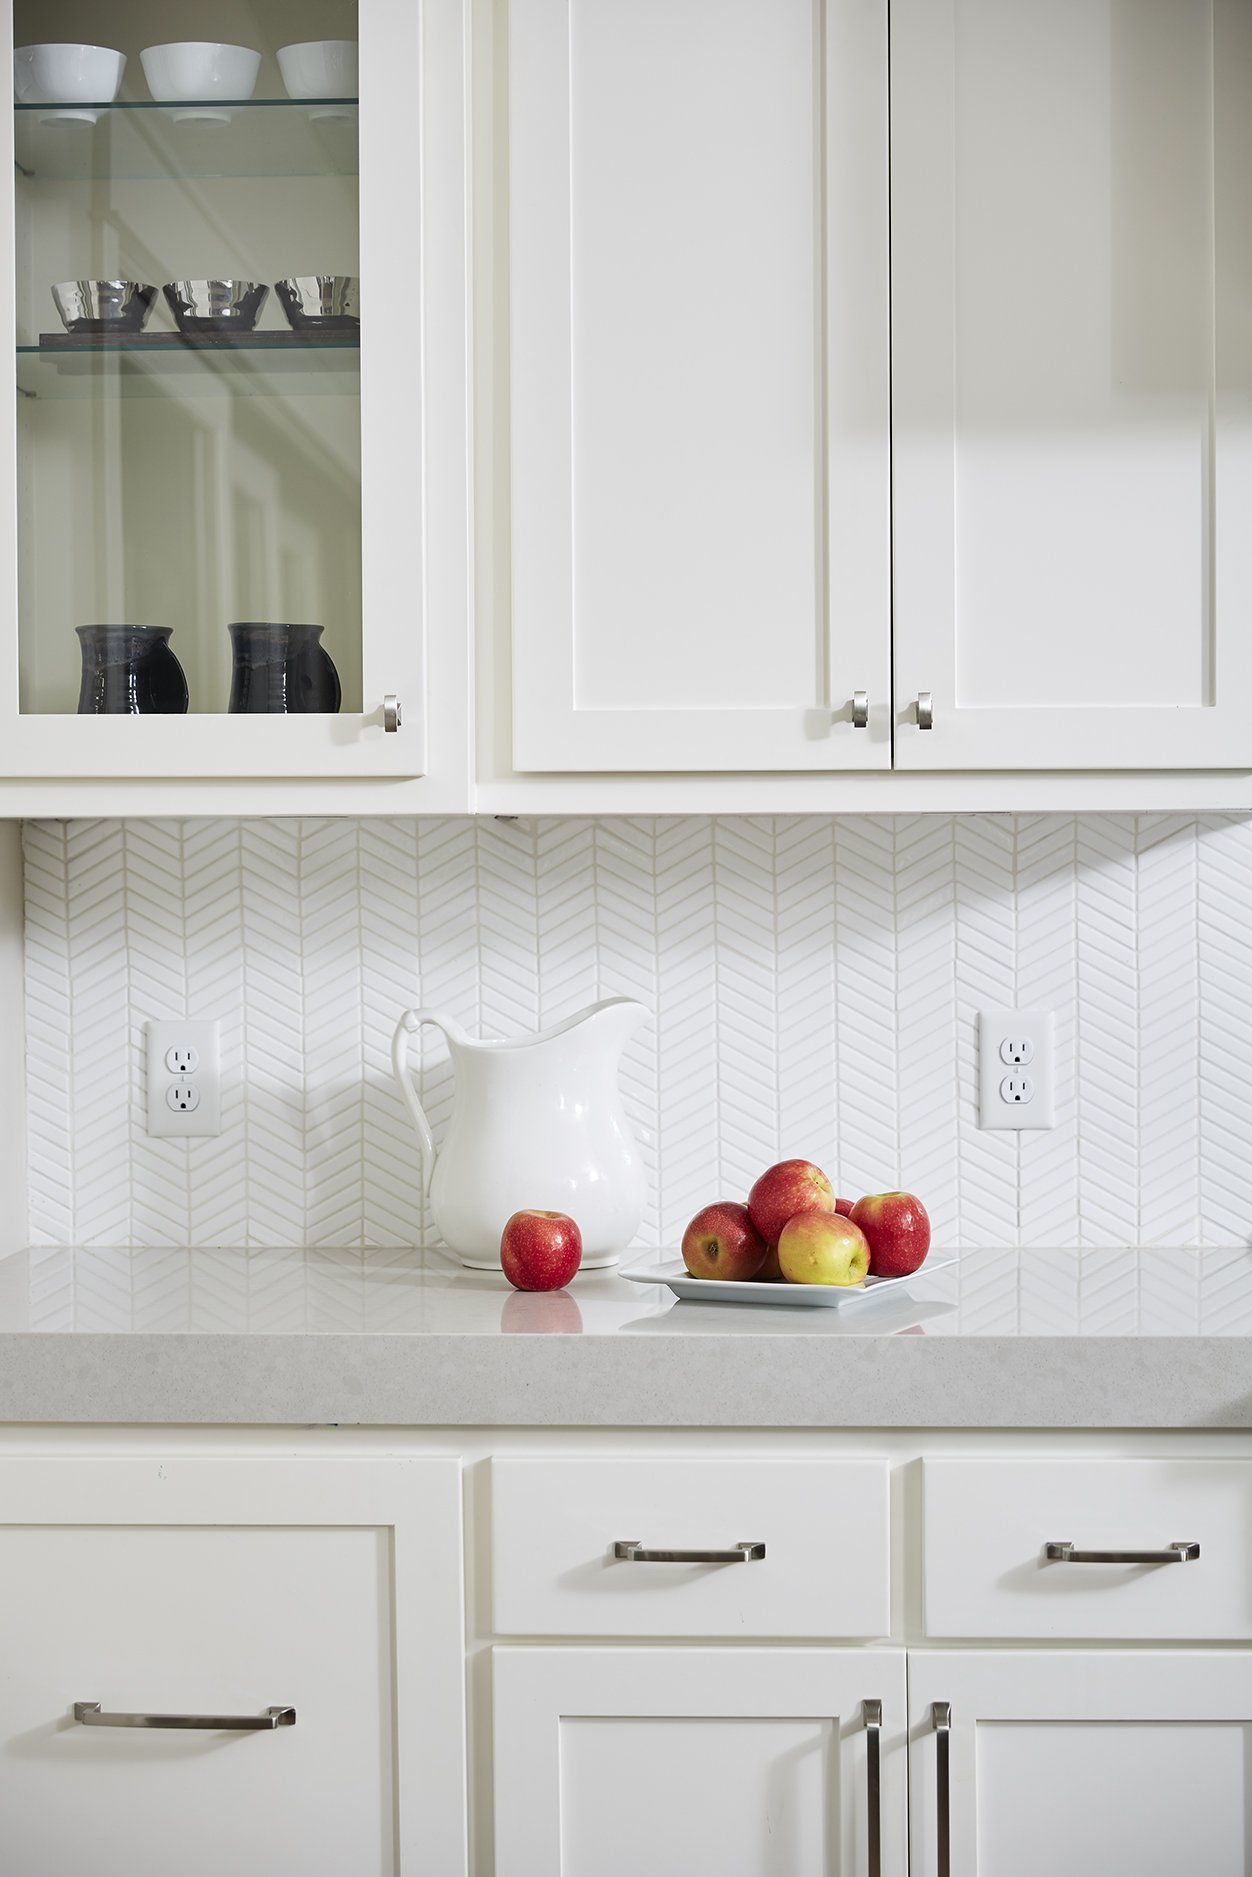 A bright white herringbone tile backsplash added subtle texture and interest to the space, popping against the grey countertops.